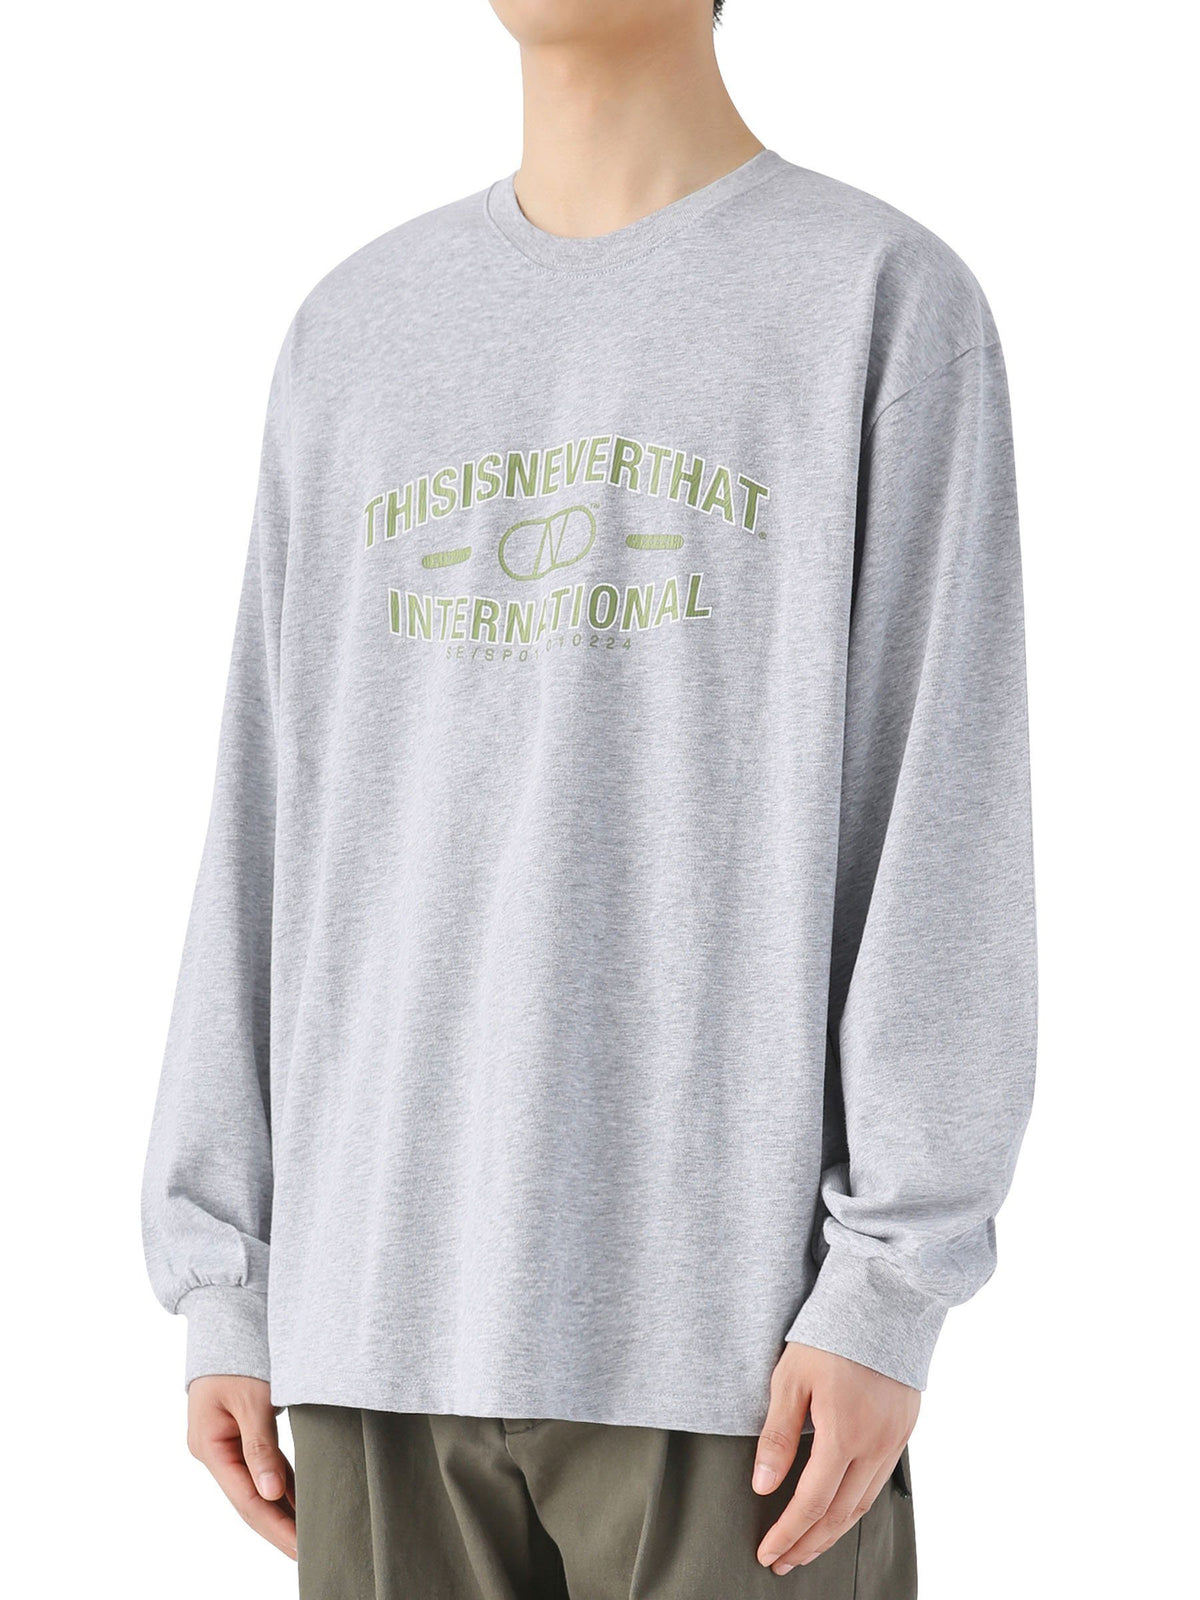 INTL. ARC Logo L/SL Top - thisisneverthat